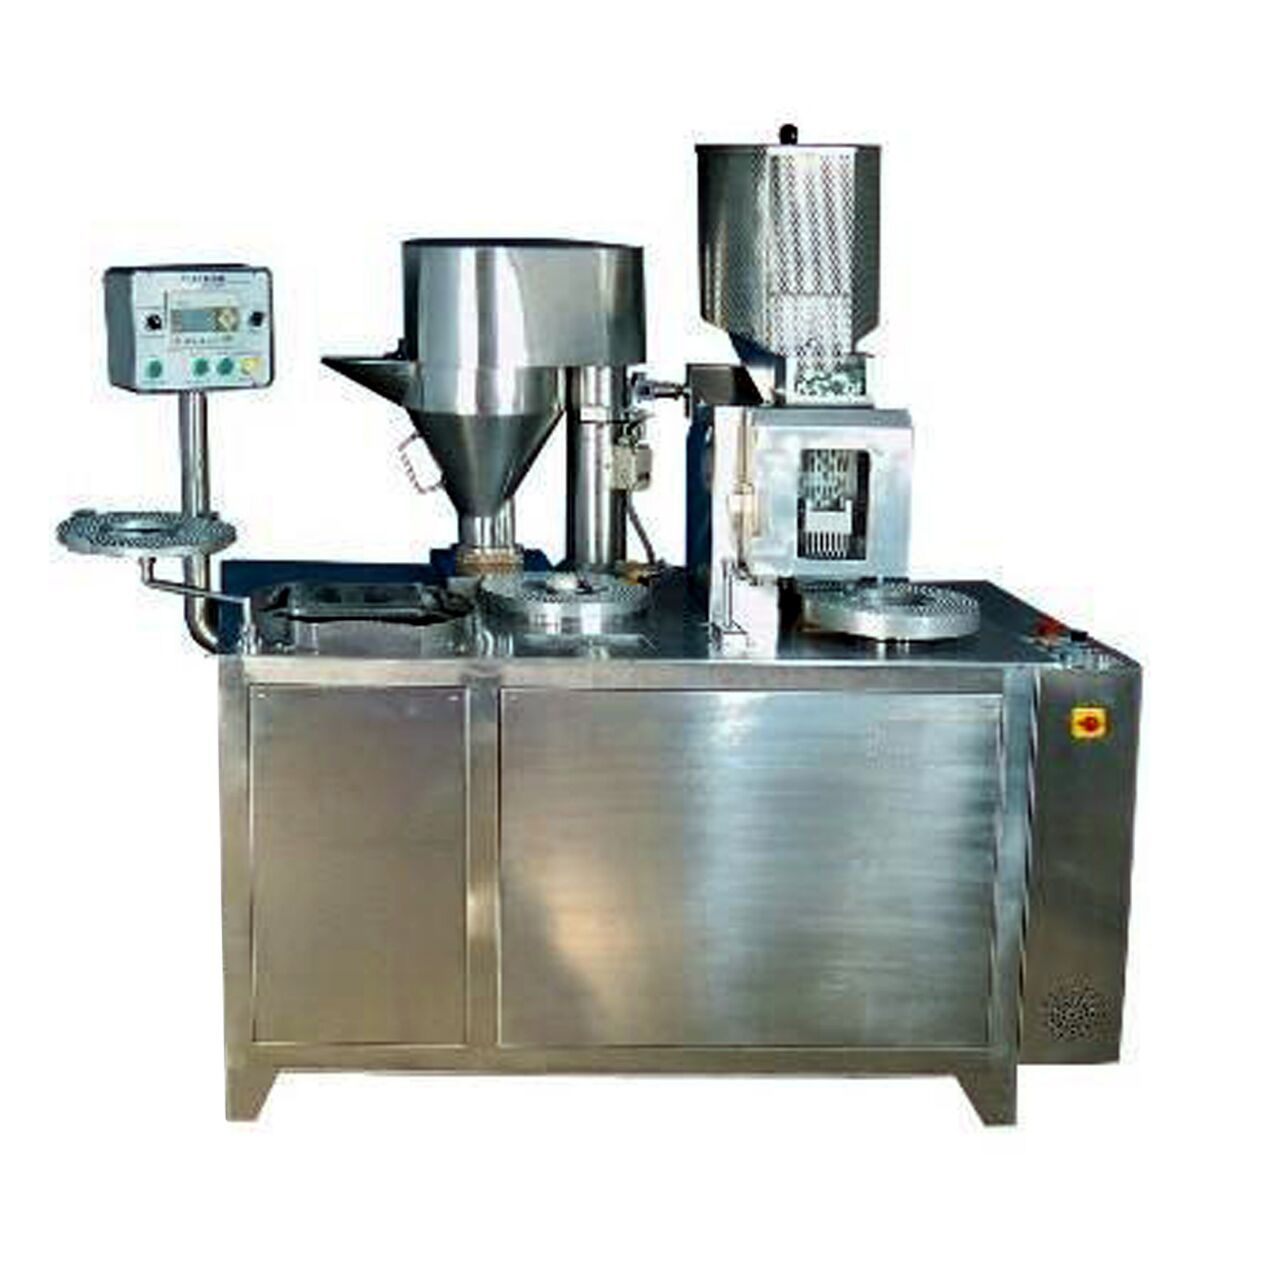 Leading Manufacturer Of Stainless Steel Food Processing